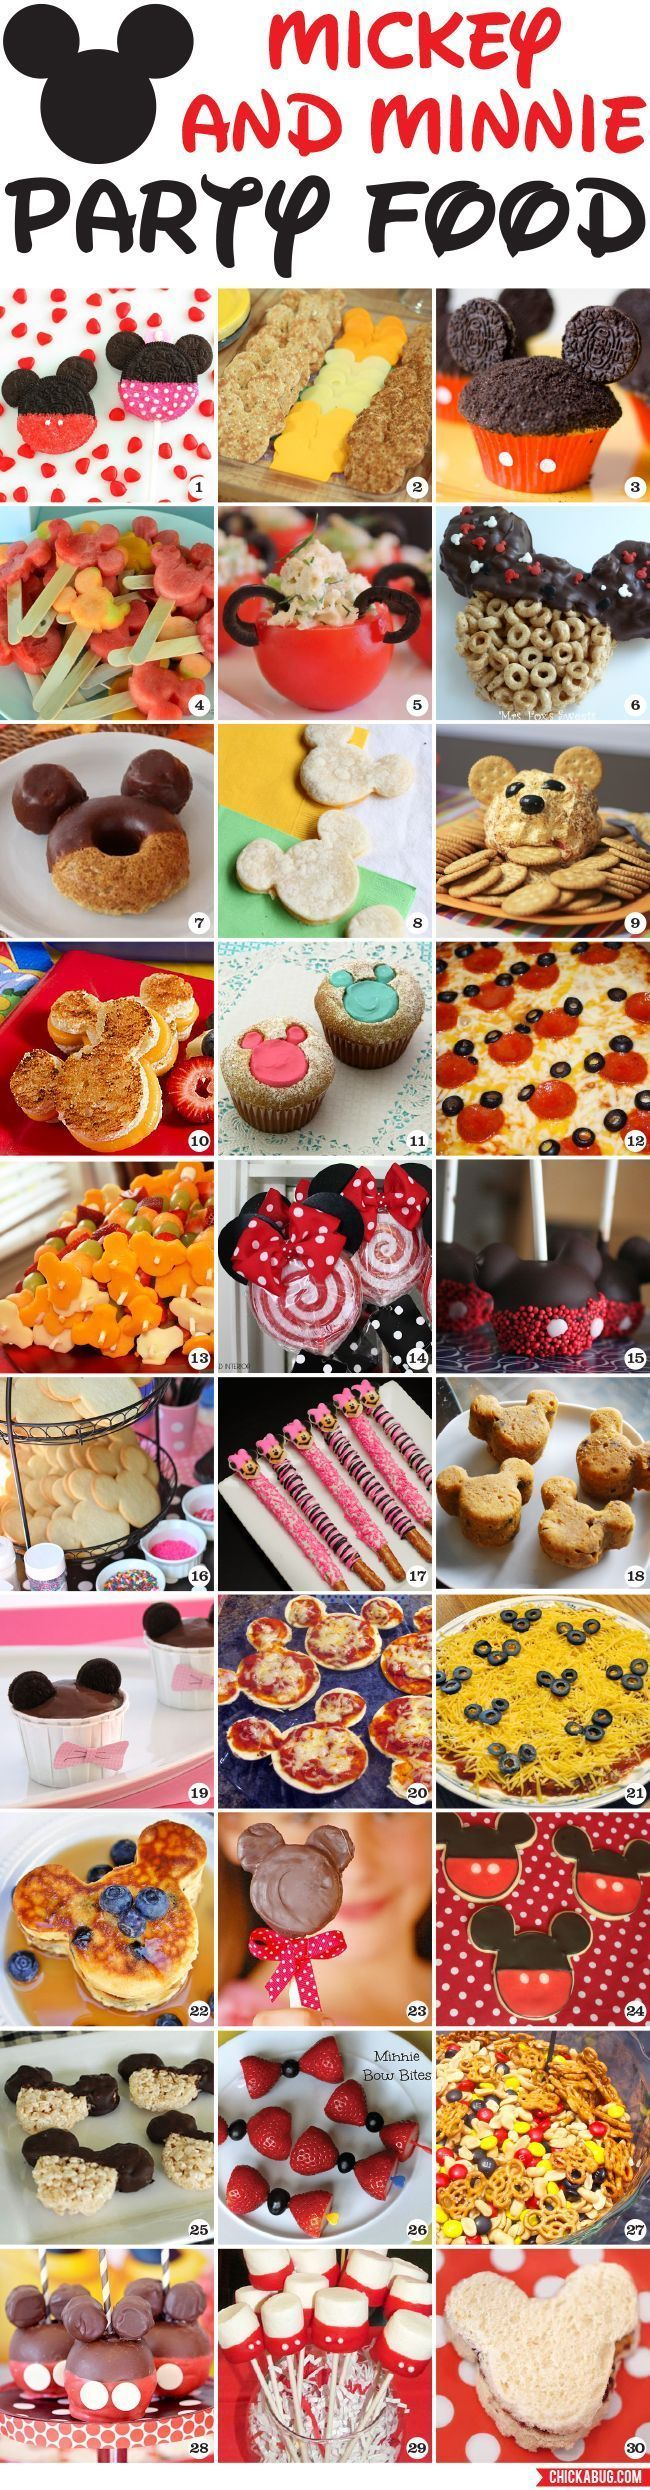 30 awesome Mickey Mouse and Minnie Mouse party food ideas! | Disney Party Ideas…